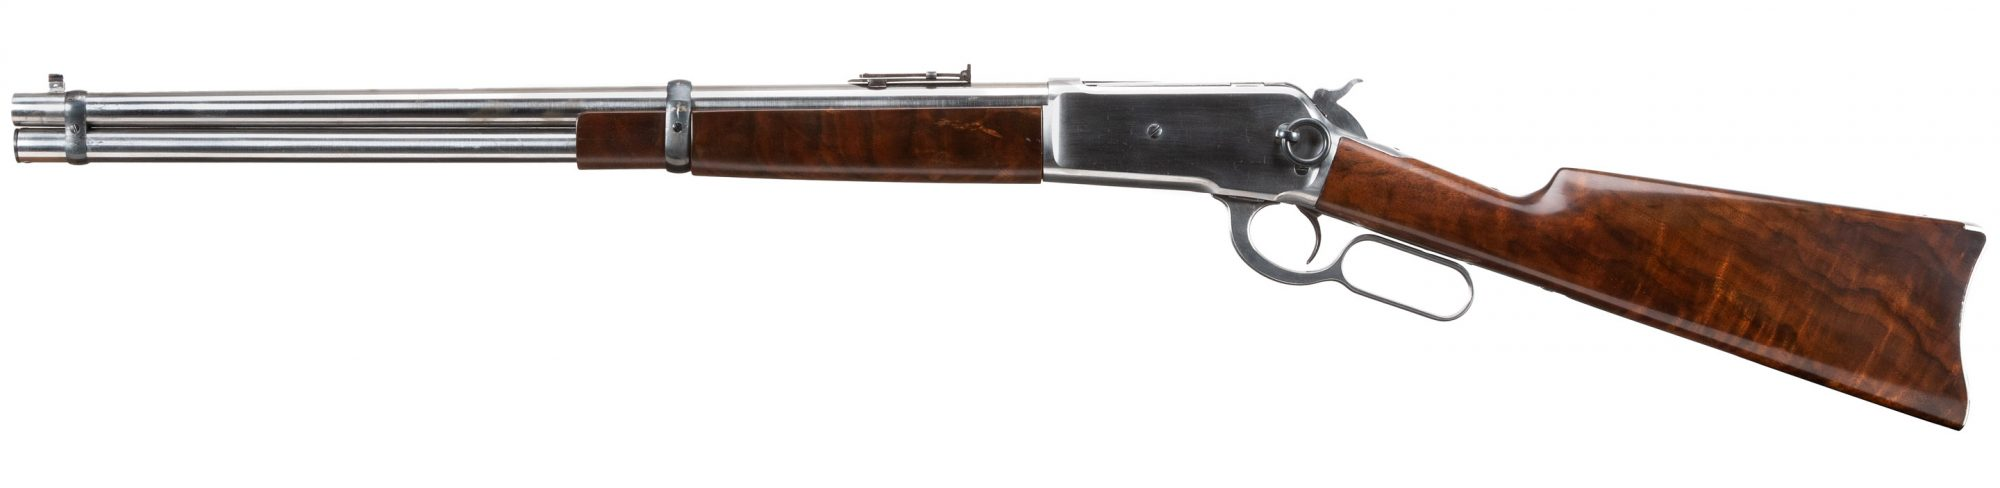 Photo of used Winchester 1886, sold as-is through Turnbull Restoration